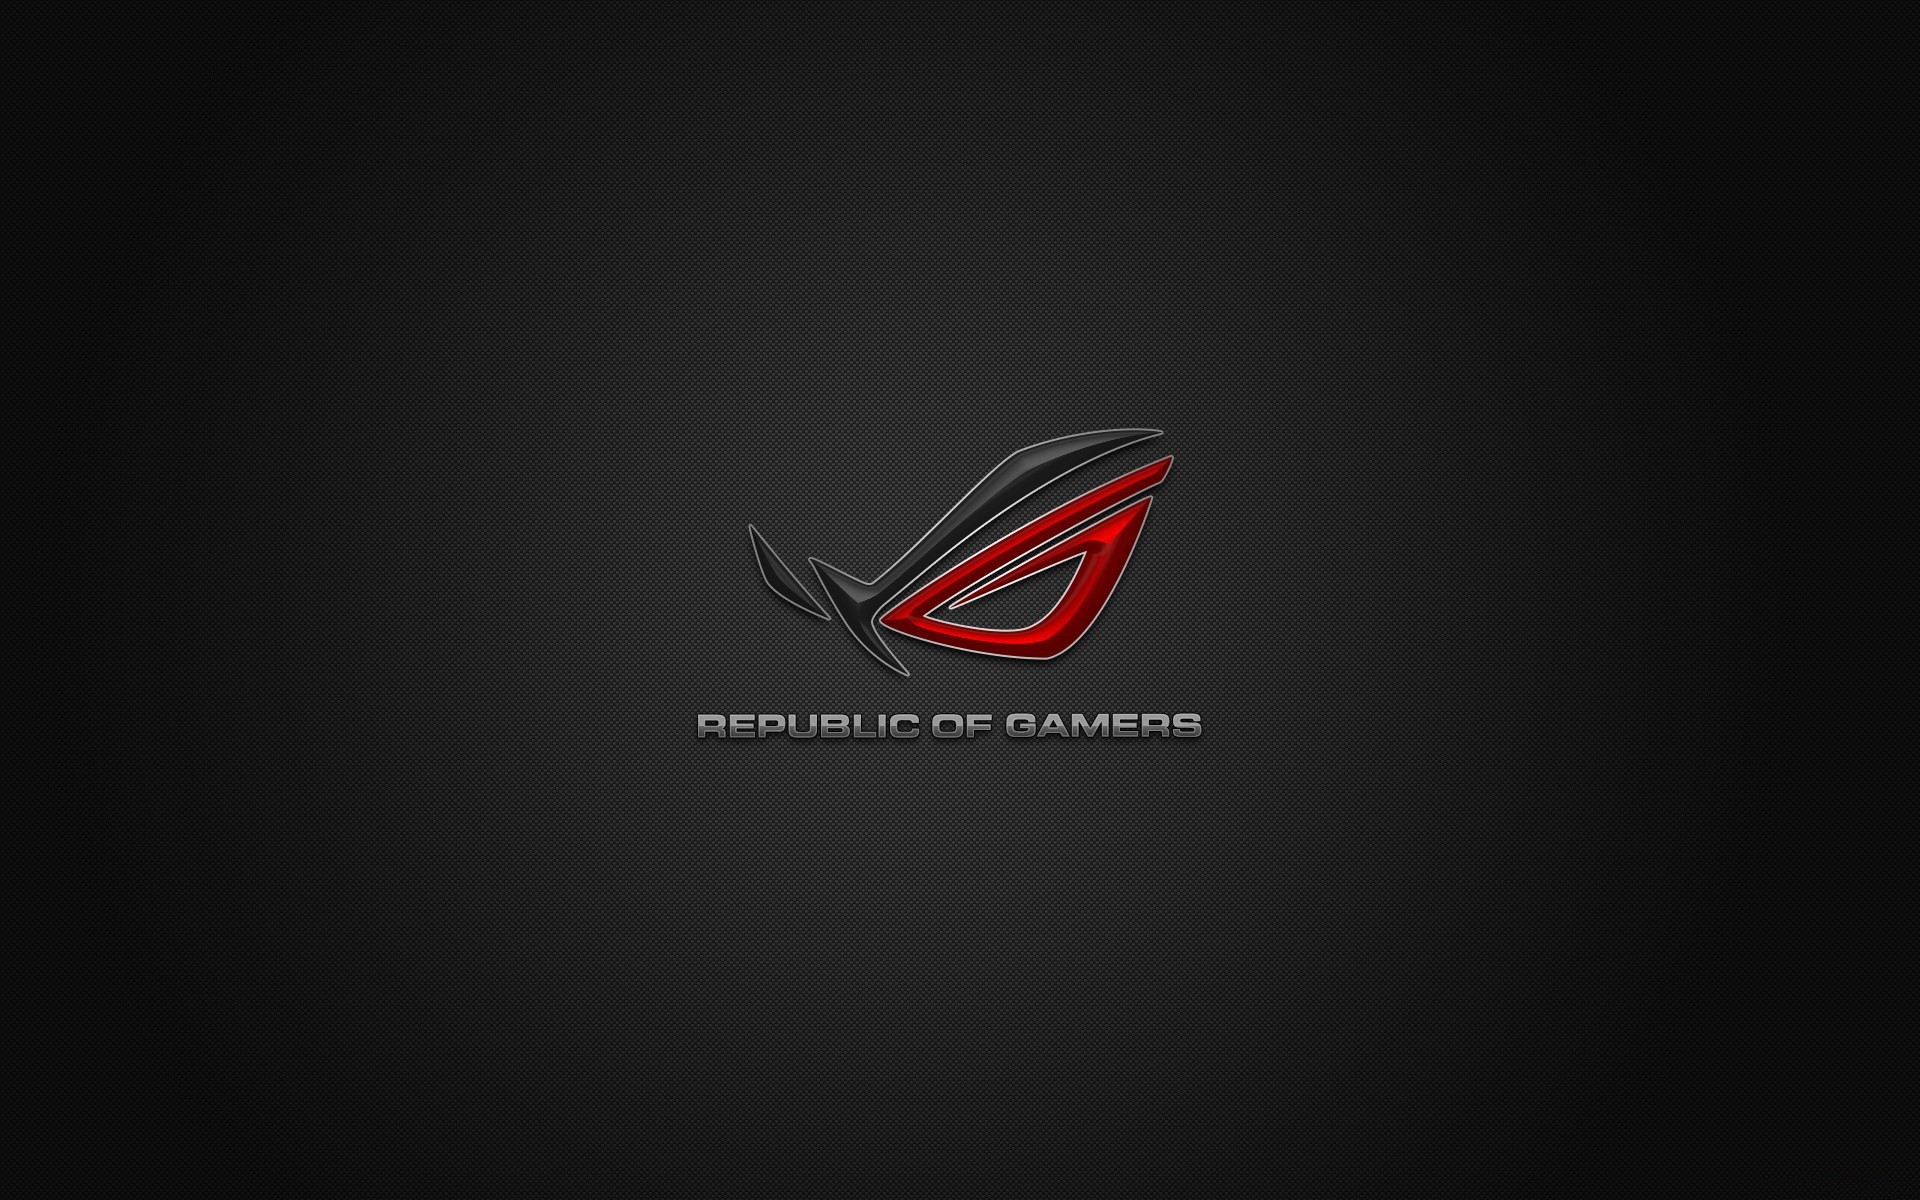 Asus Republic Of Gamers Logo Windows Logo Wallpaper Allwallpaper